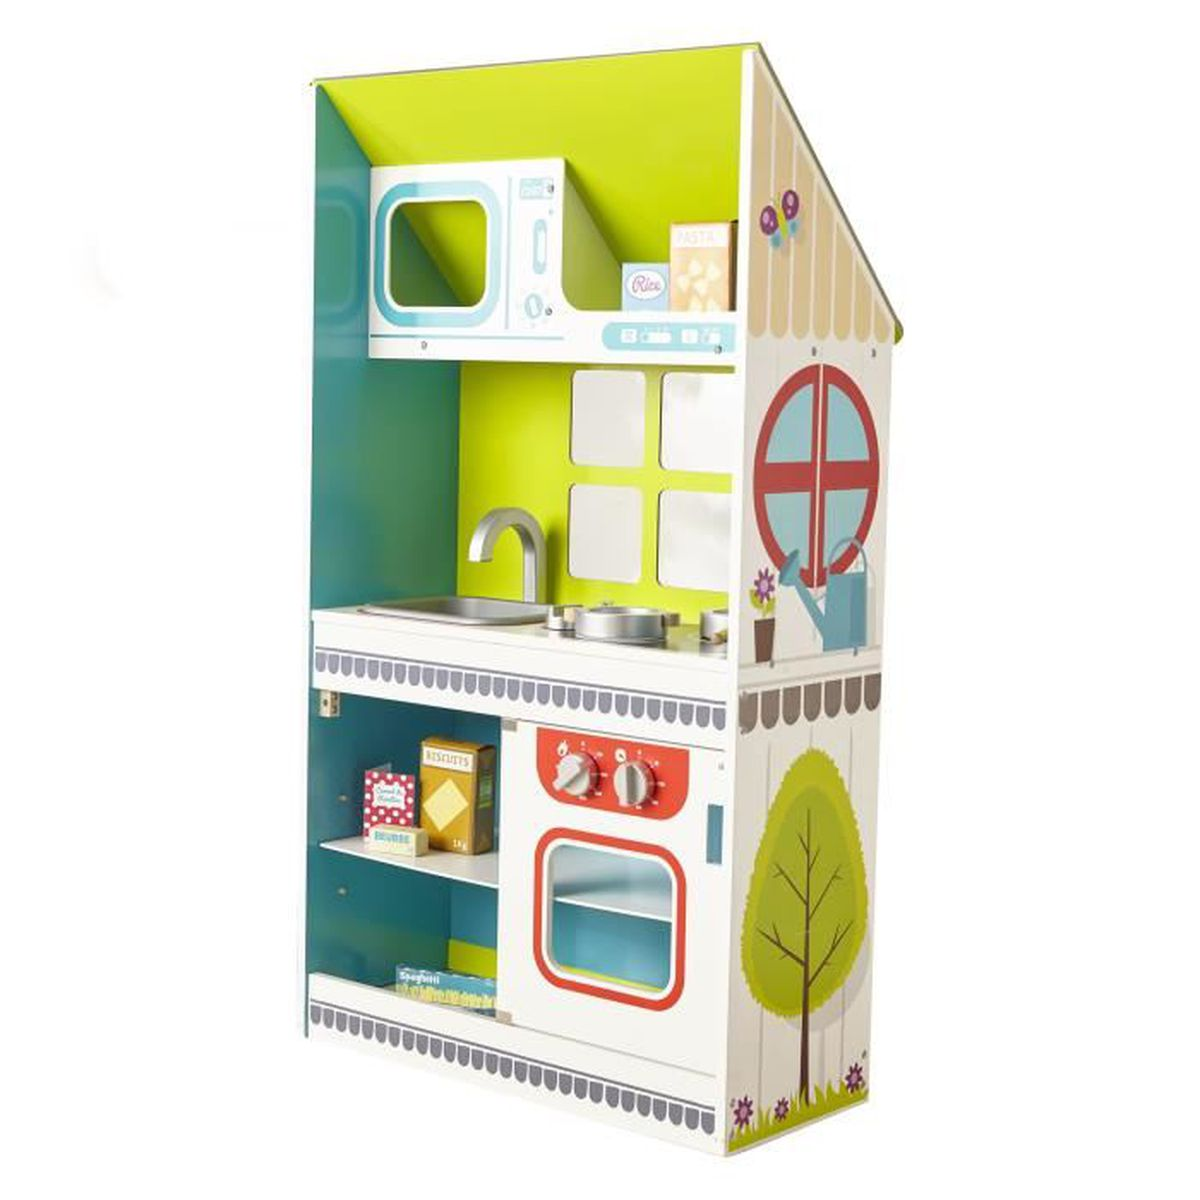 toys grande cuisine en bois pour enfant h100cm achat. Black Bedroom Furniture Sets. Home Design Ideas